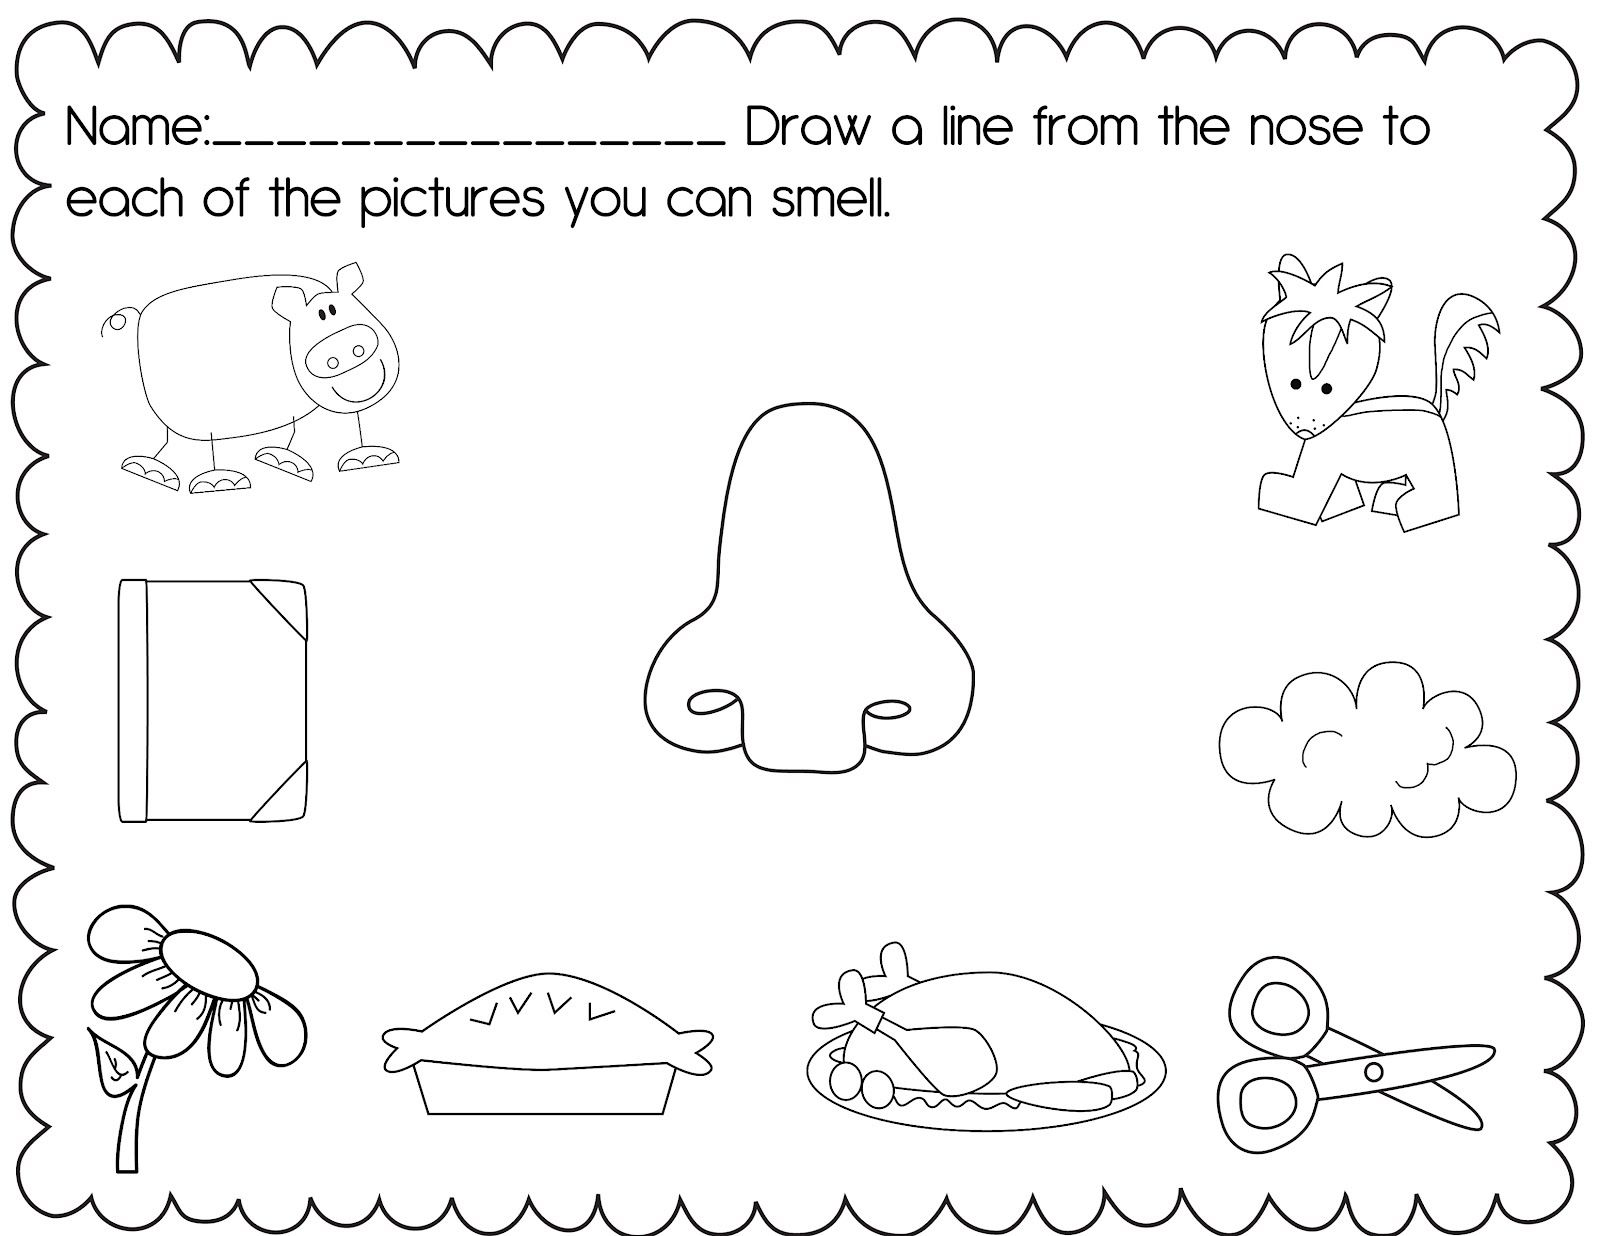 5 Senses Worksheets For Kindergarten – Free Kindergarten Science Worksheets